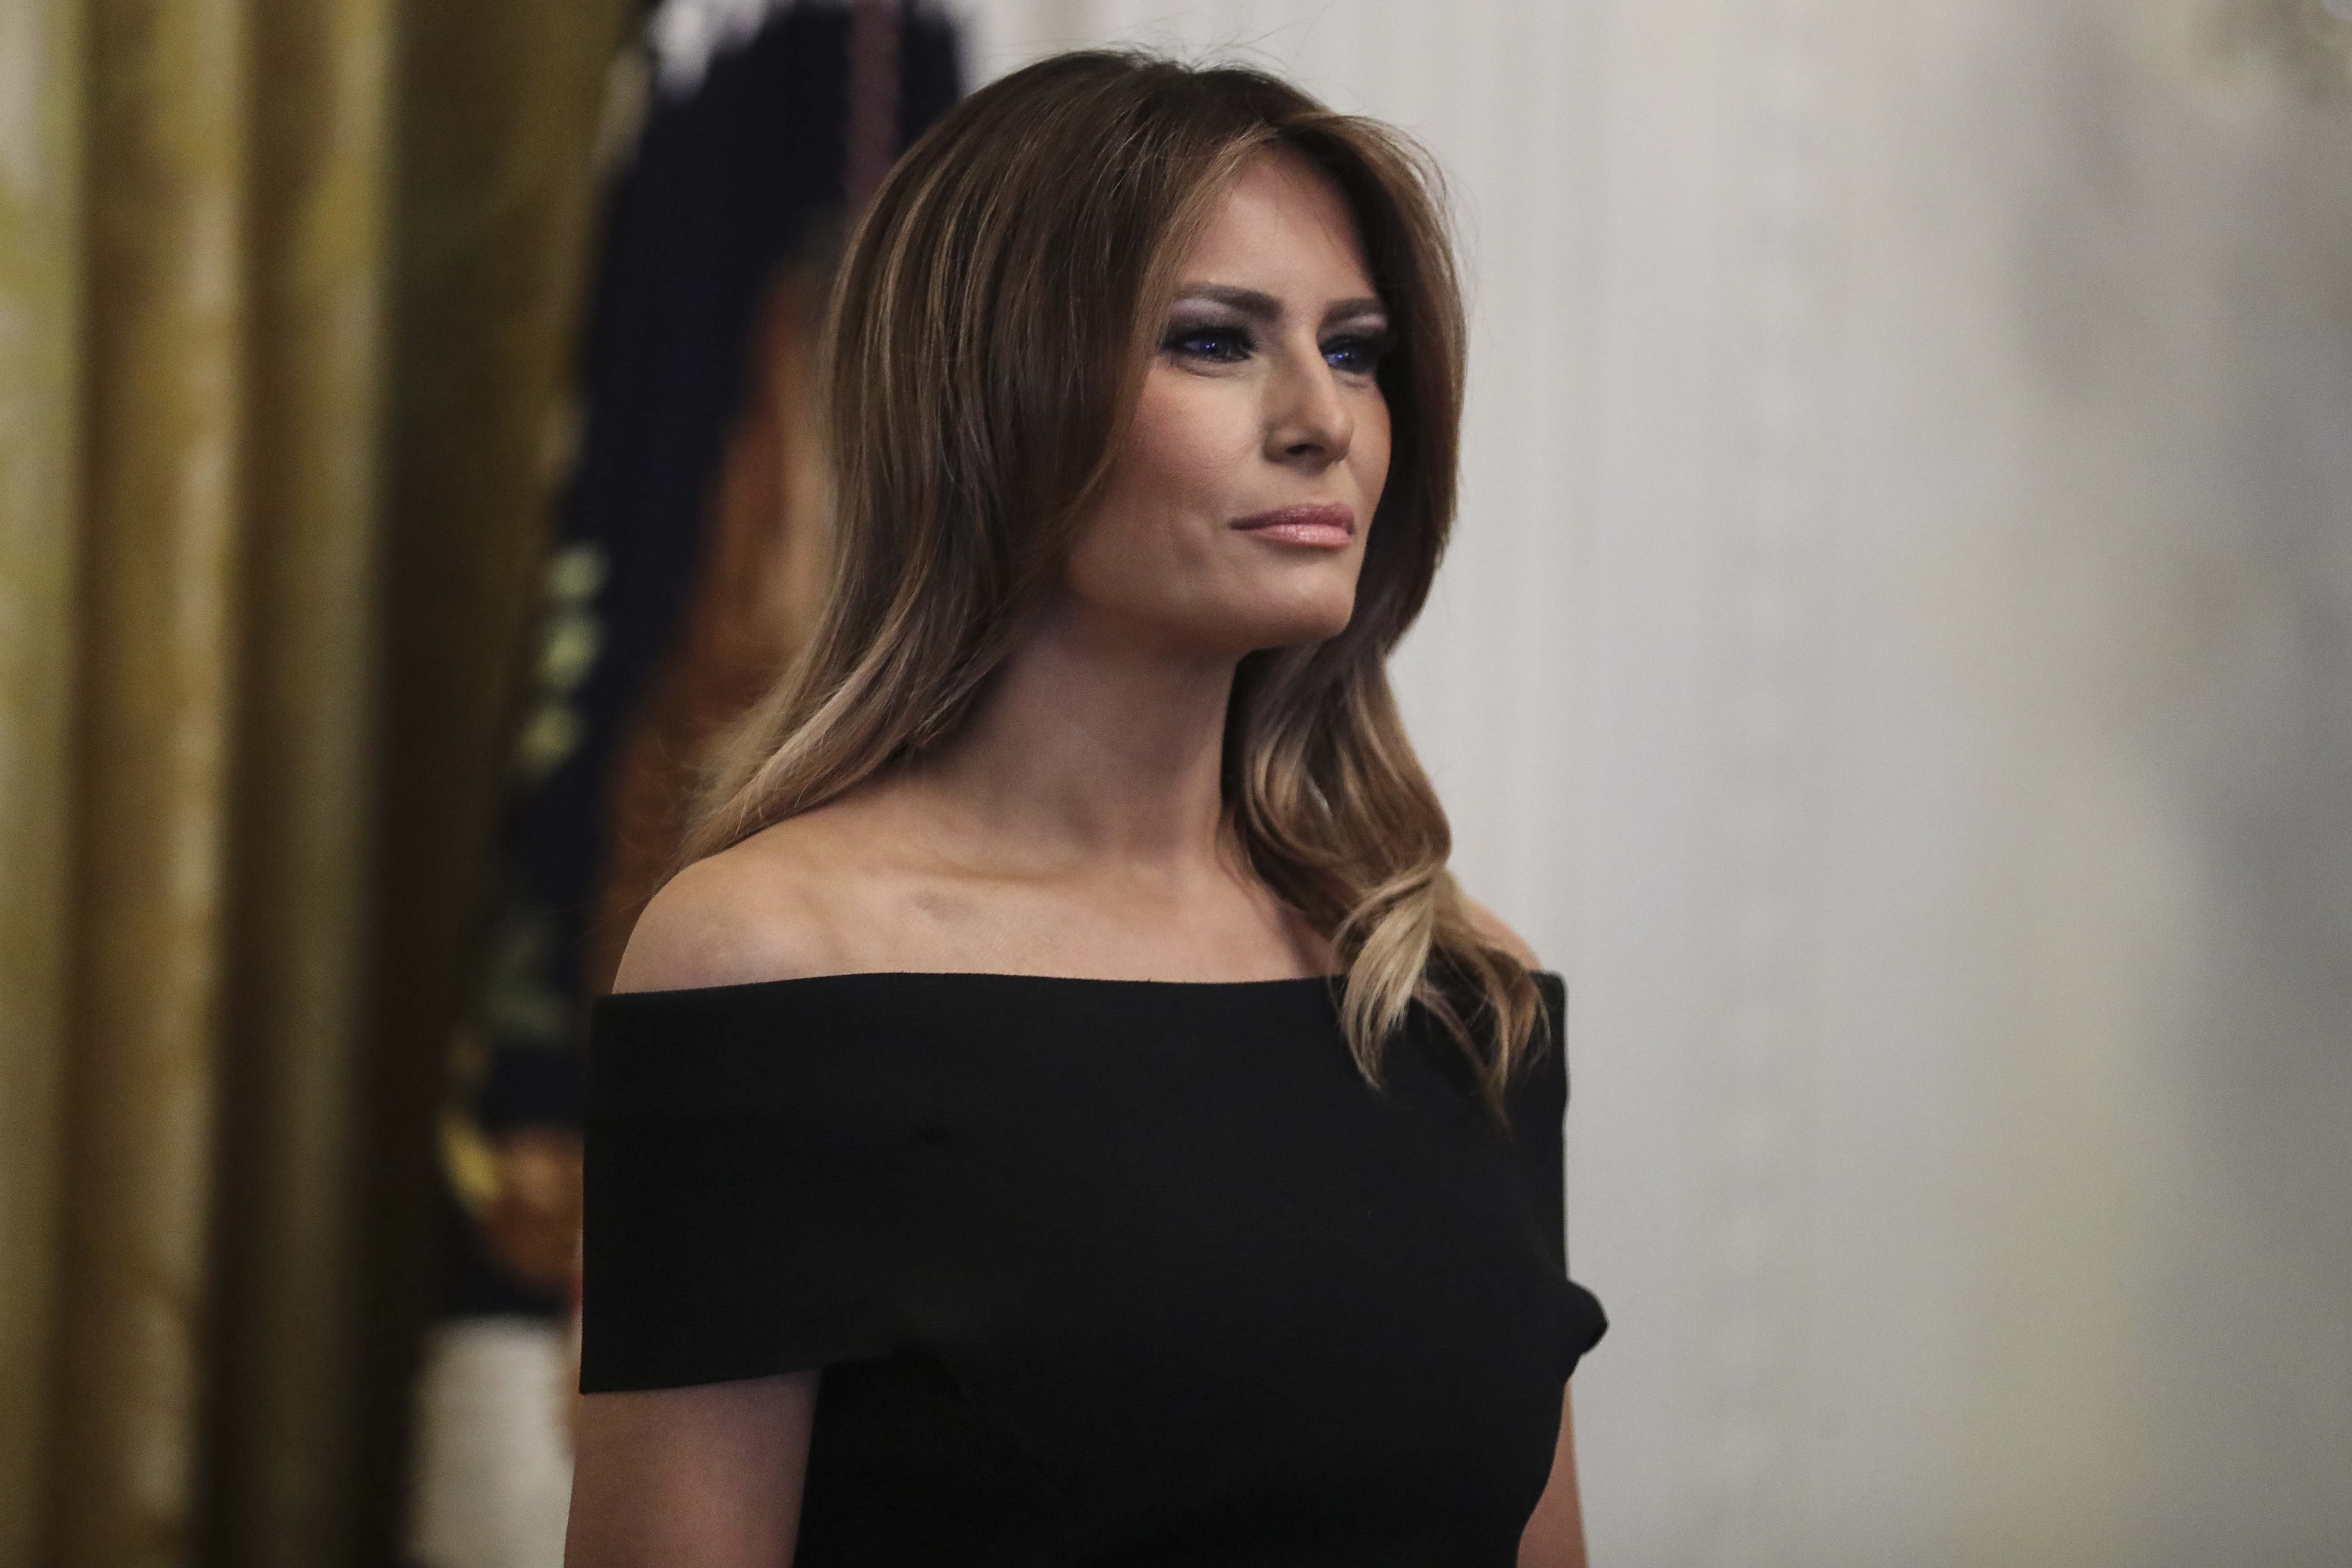 First lady Melania Trump listens as President Trump speaks during a Hanukkah reception in the East Room of the White House on December 6, 2018 in Washington, DC.